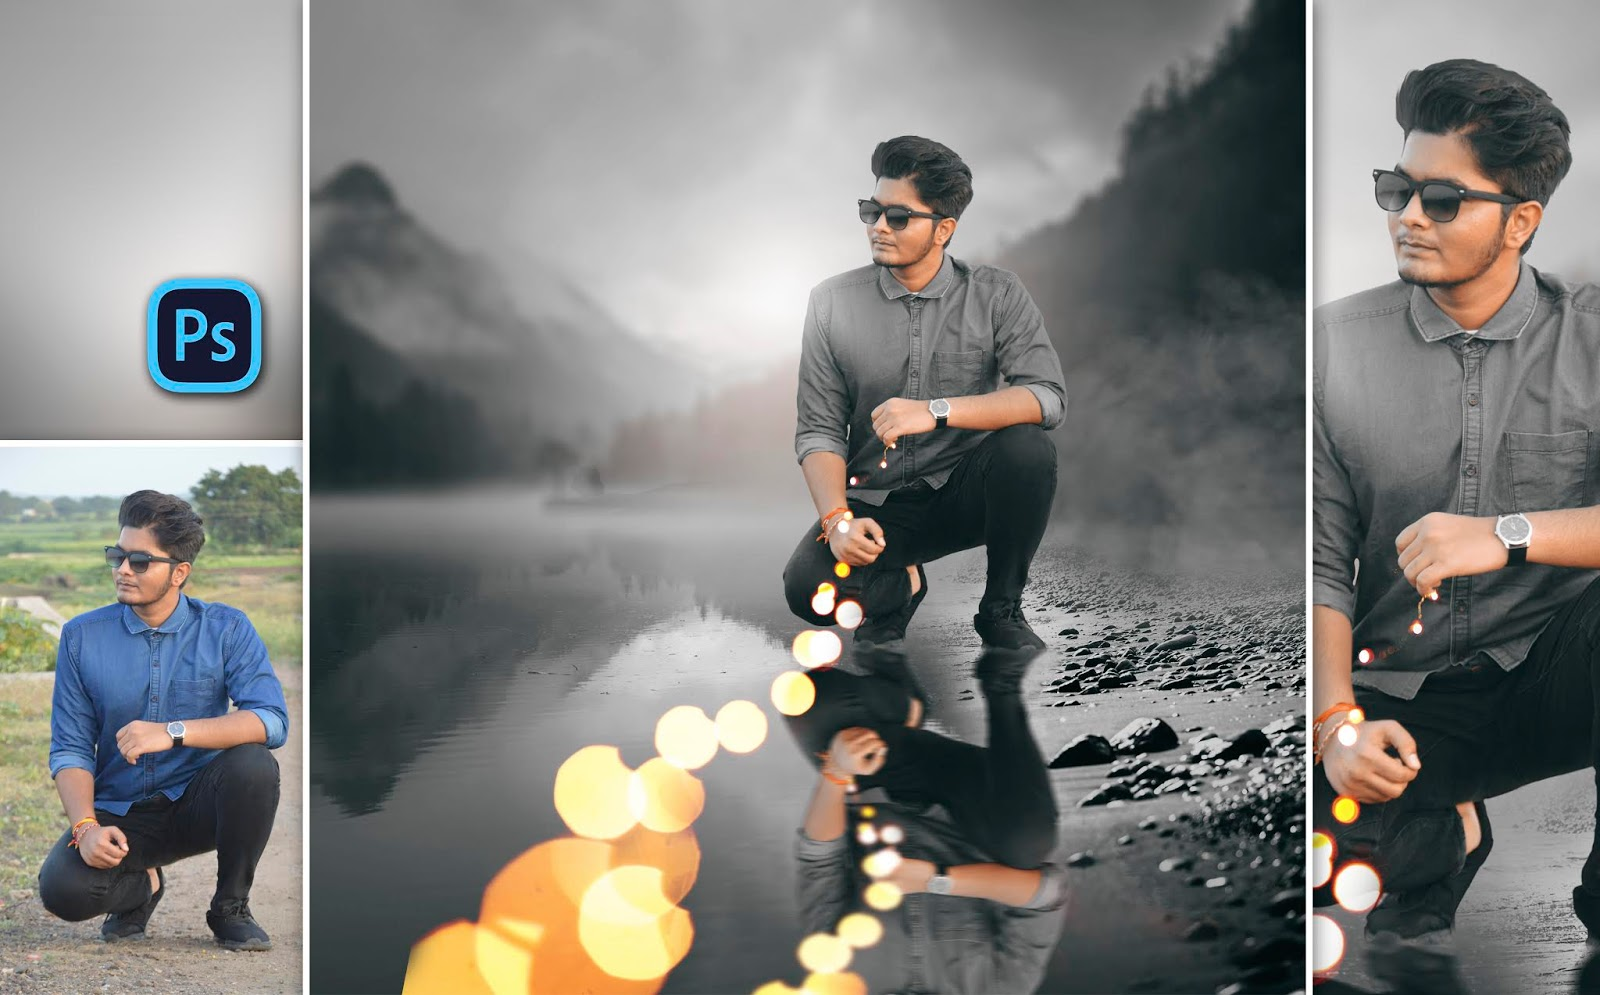 New Concept | Reflection on Water of Boy Holding Fairy Lights in Hand Photo Manipulation in Photoshop